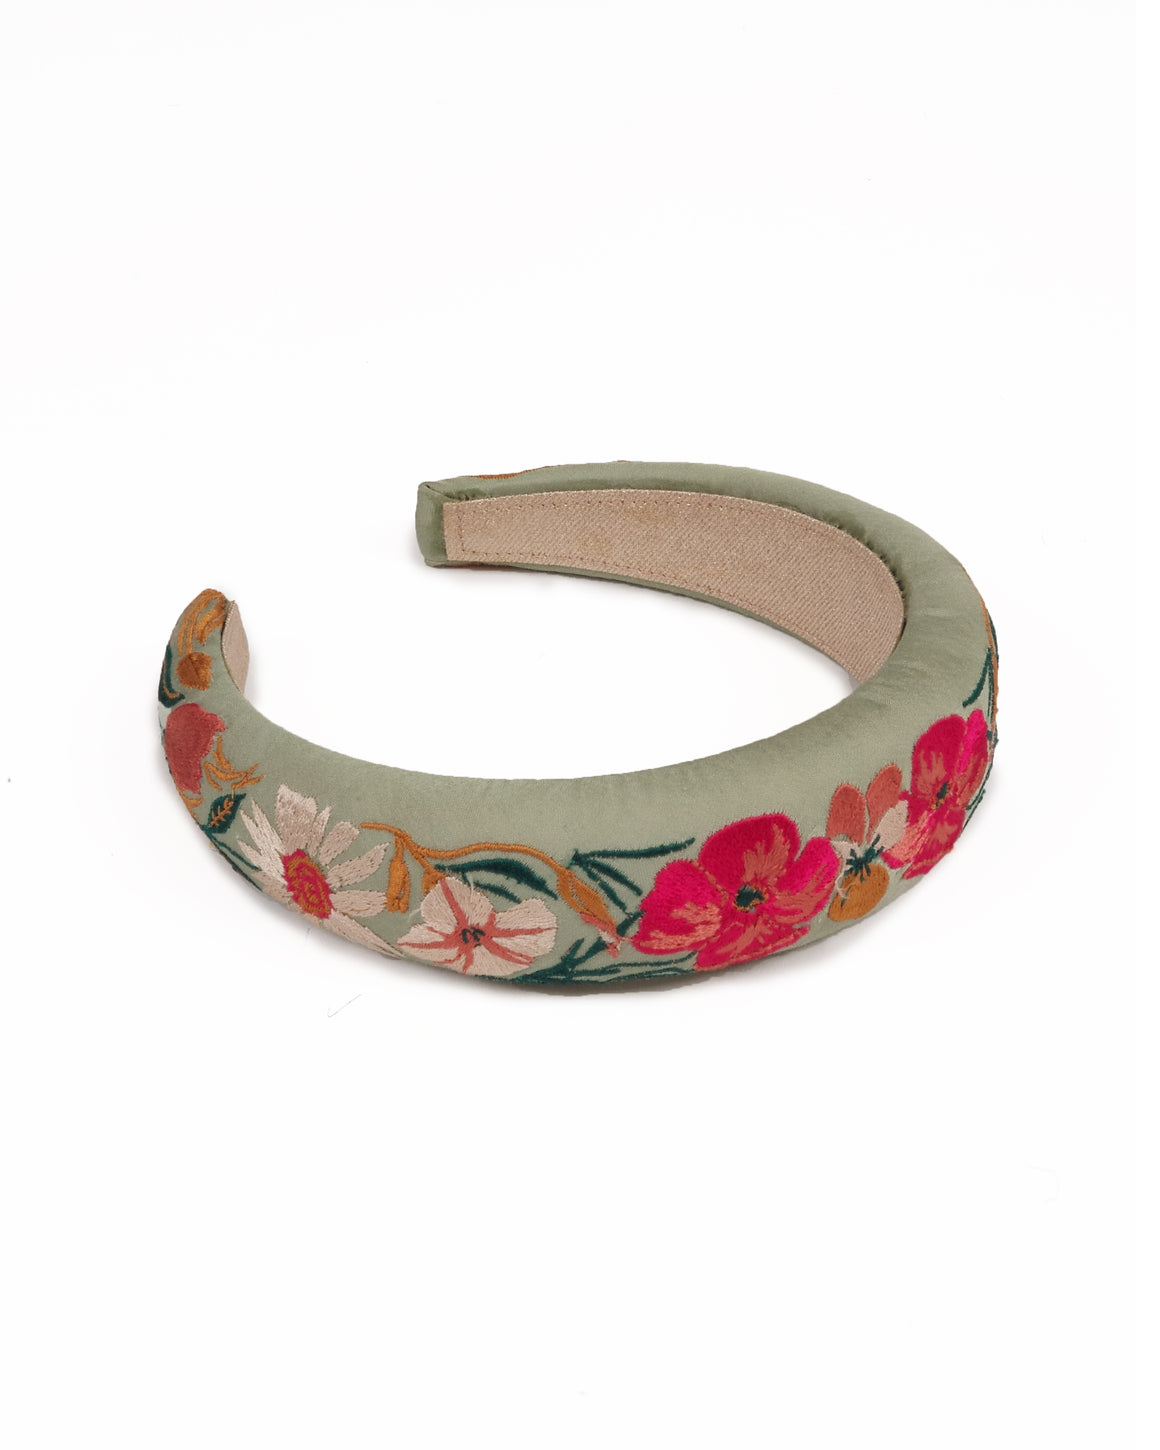 mint satin modal padded headband with coral and white embroidered flowers